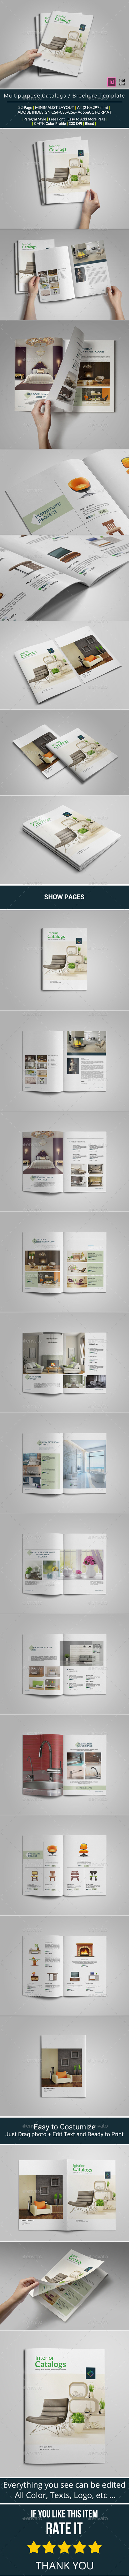 GraphicRiver Multipurpose Catalogs Brochure 10255179